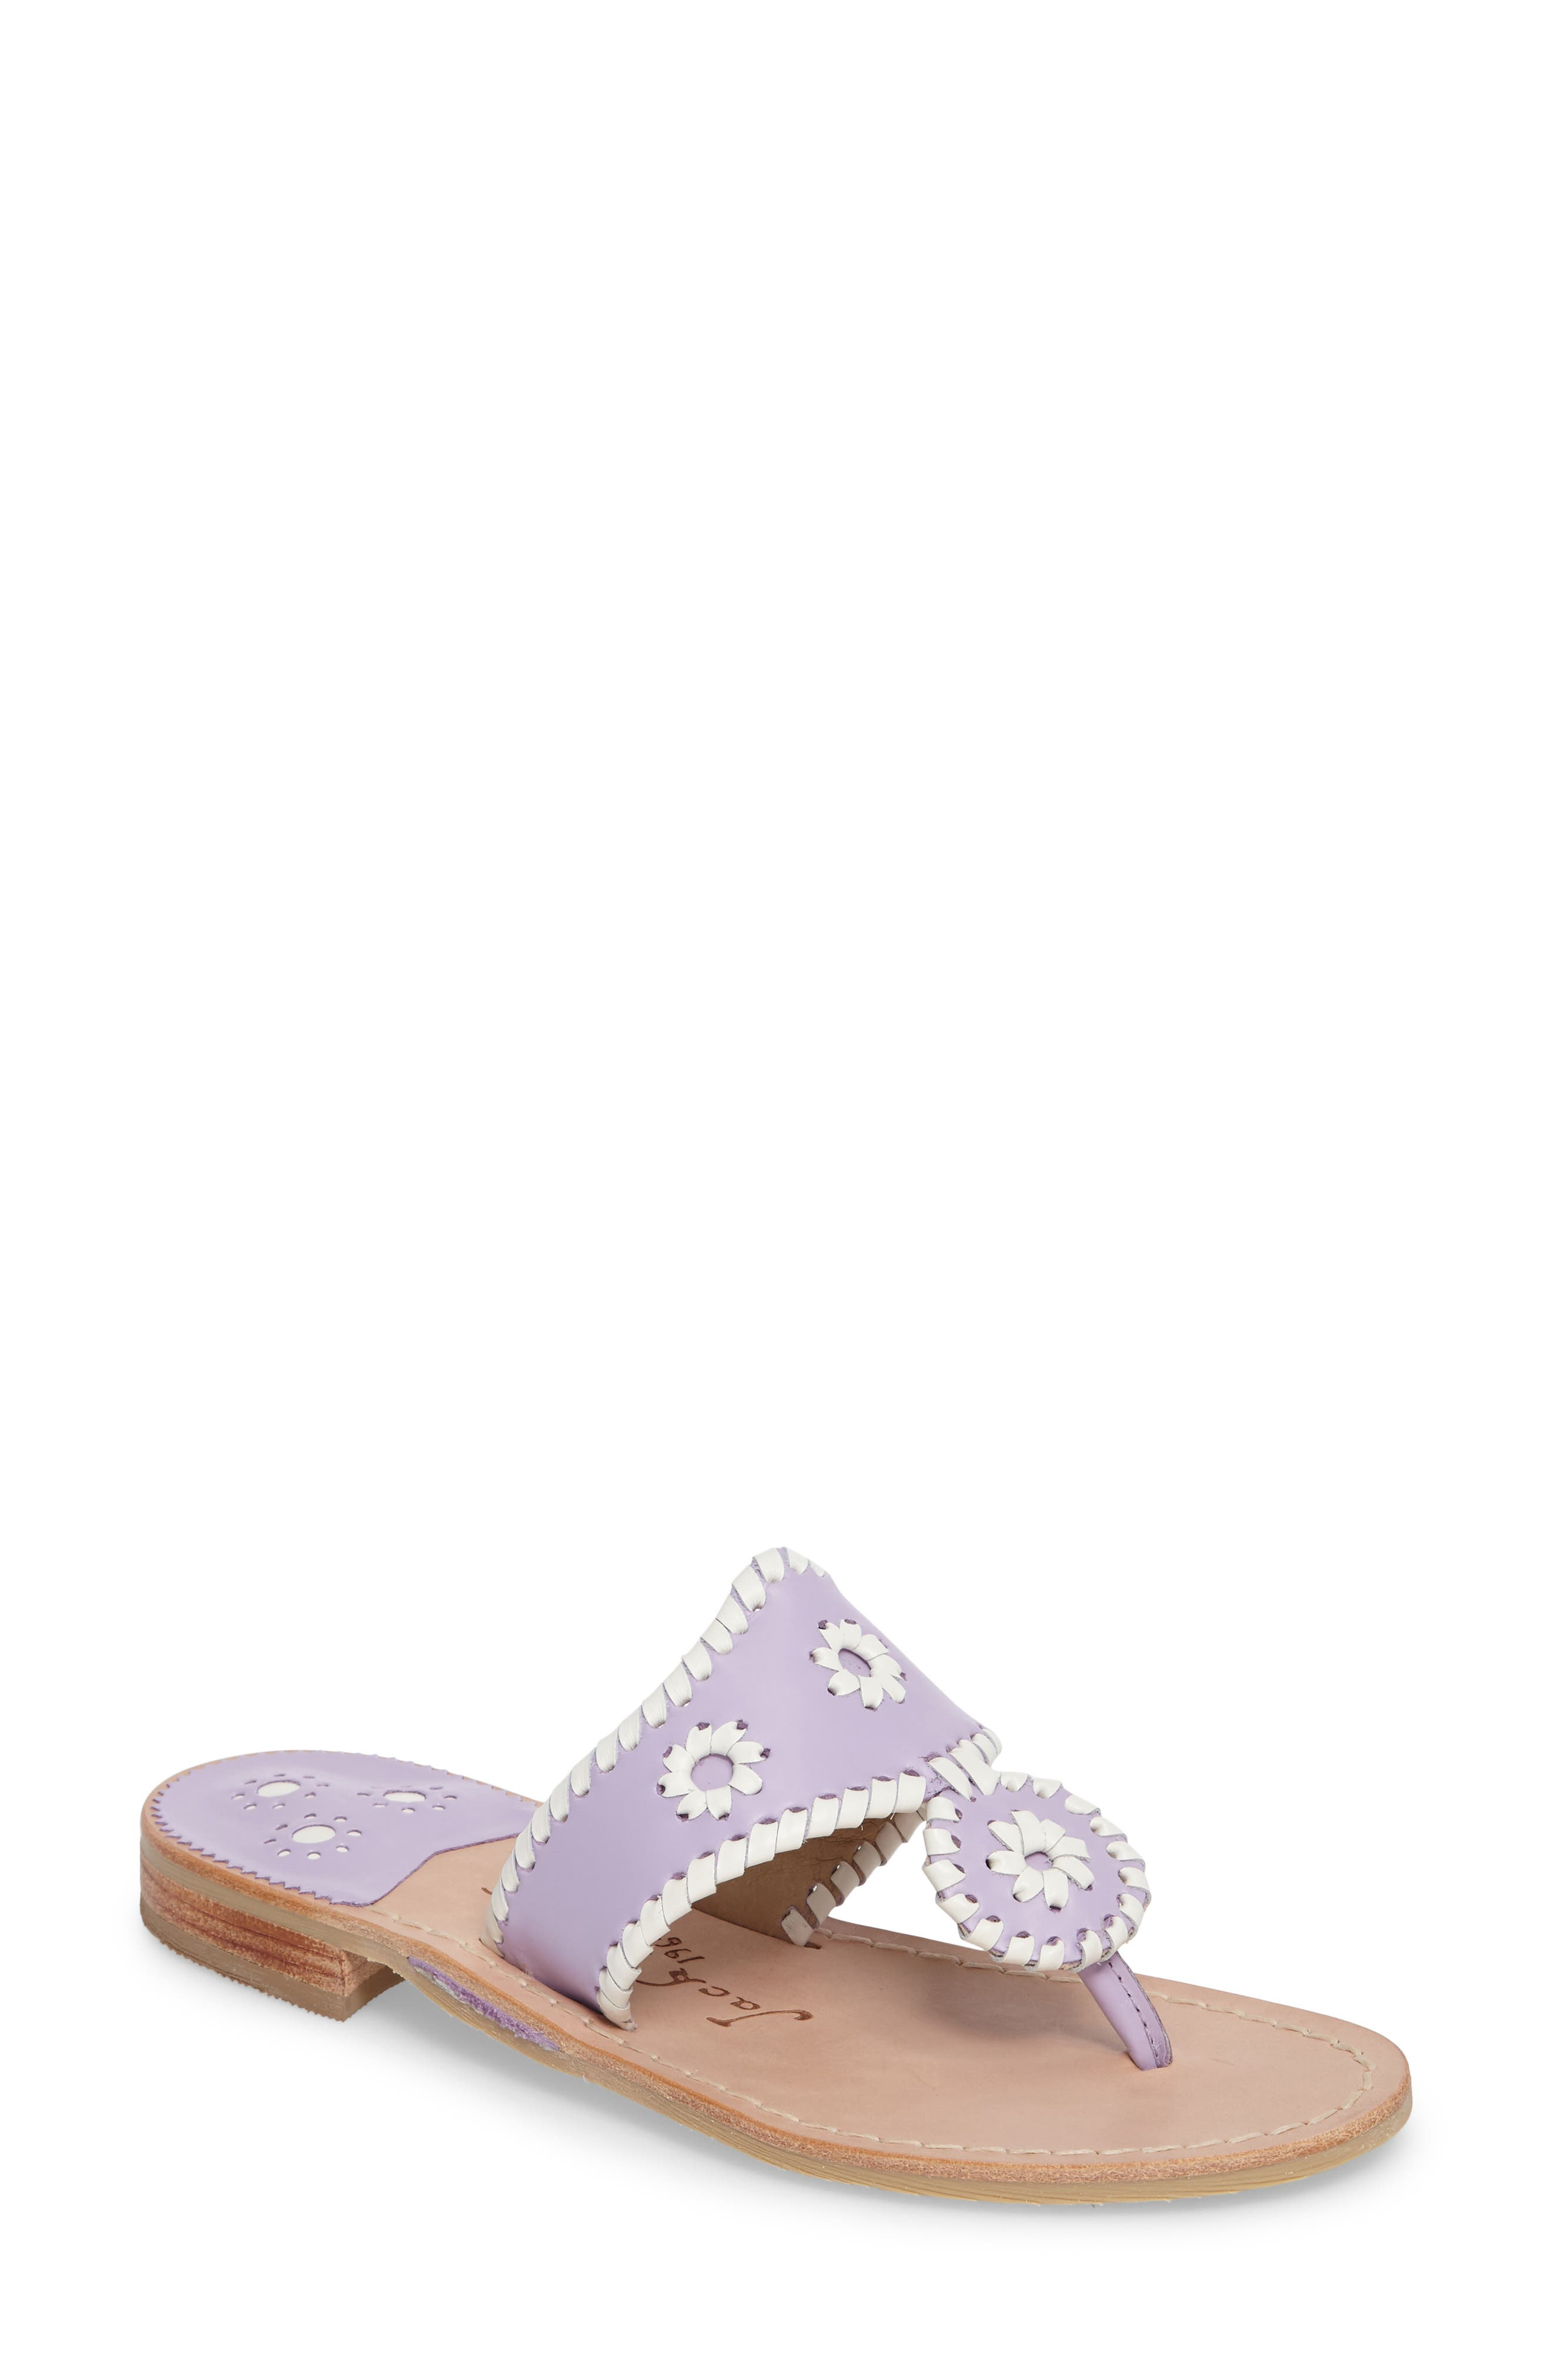 Pretty In Pastel Sandal,                         Main,                         color, Lilac Leather